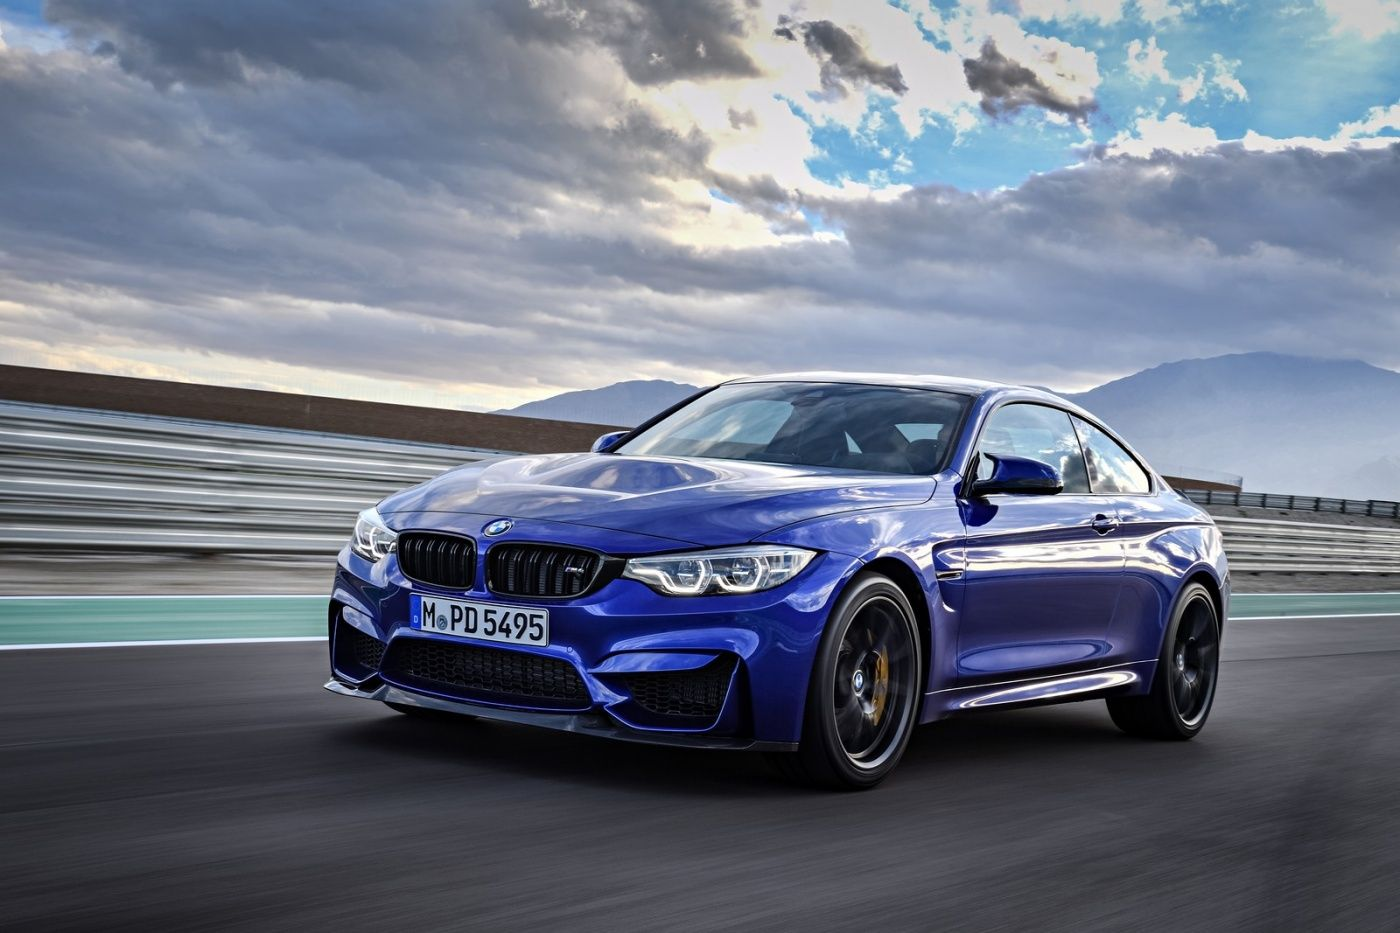 Bmw M4 Cs For A Handful Of Horses Bmw M4 Bmw Bmw Wallpapers